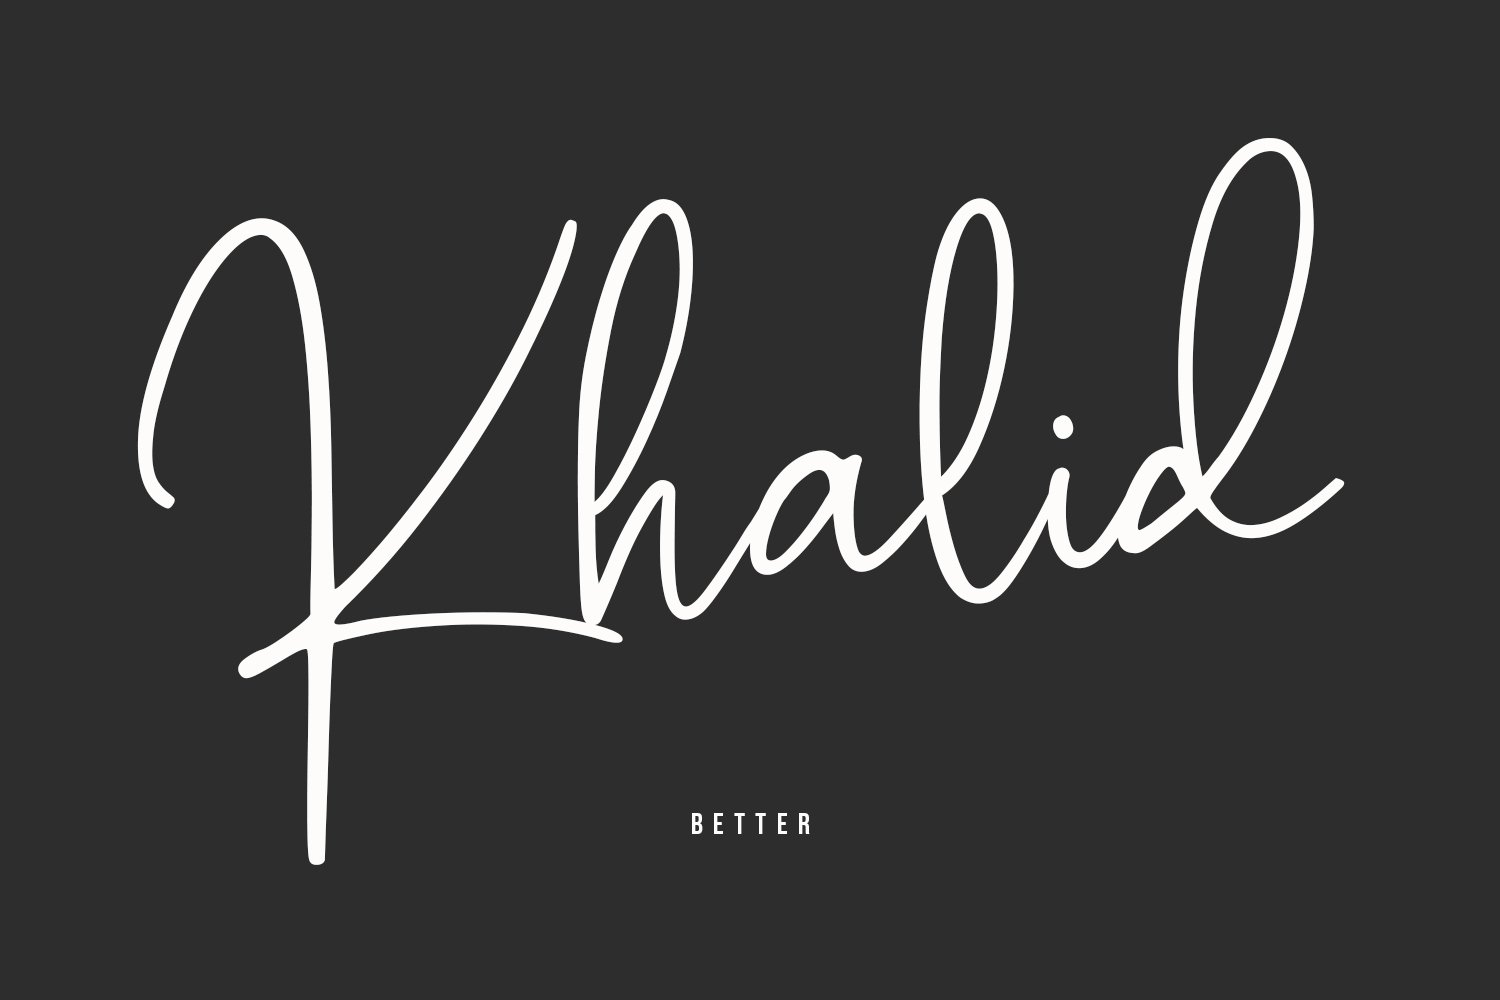 Cherrys Hand Lettered Script Signature Font example image 3